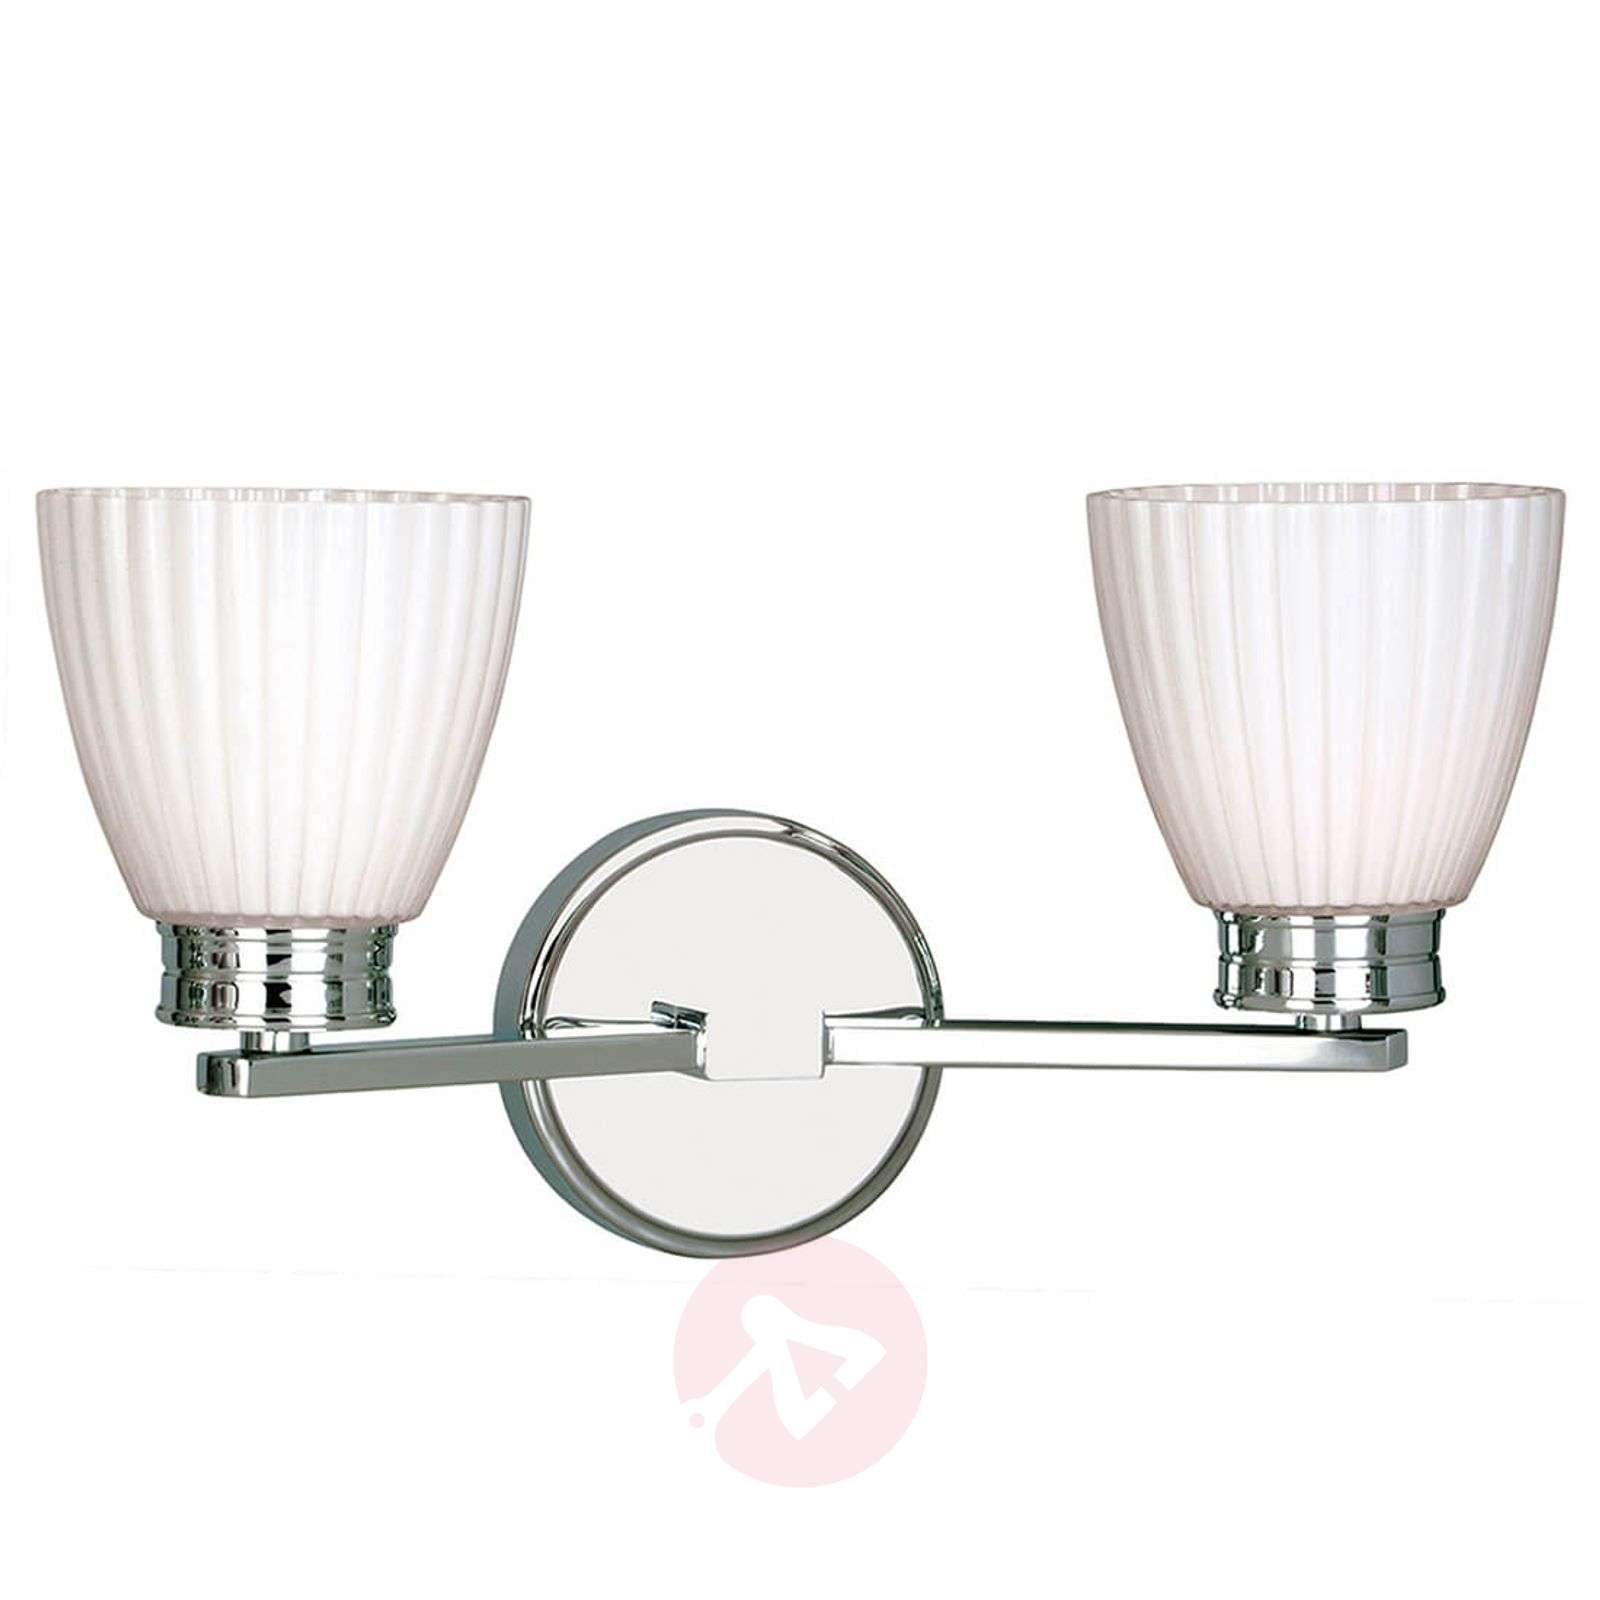 Wallingford two-bulb bathroom wall light-3048656-01